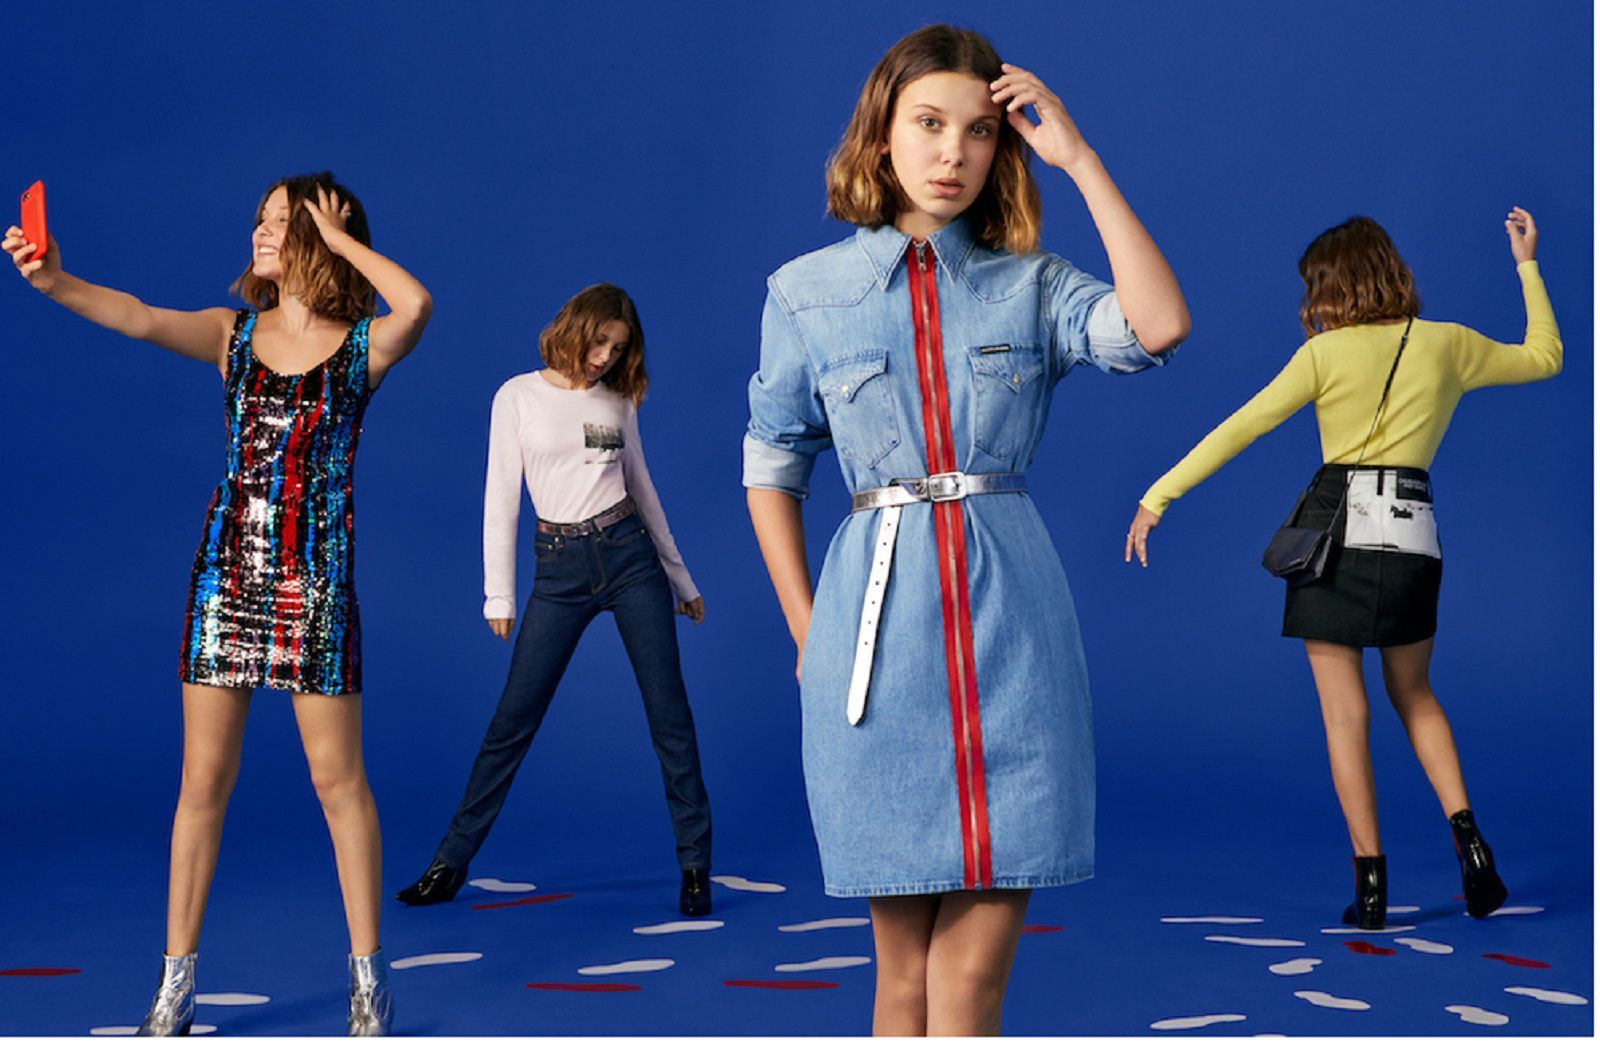 Millie Bobby Brown Brings Christmas To Calvin Klein The Stranger Things Actress Is The Star Of The Holiday 2018 Campaign Millie Bobby Brown Bobby Brown Millie